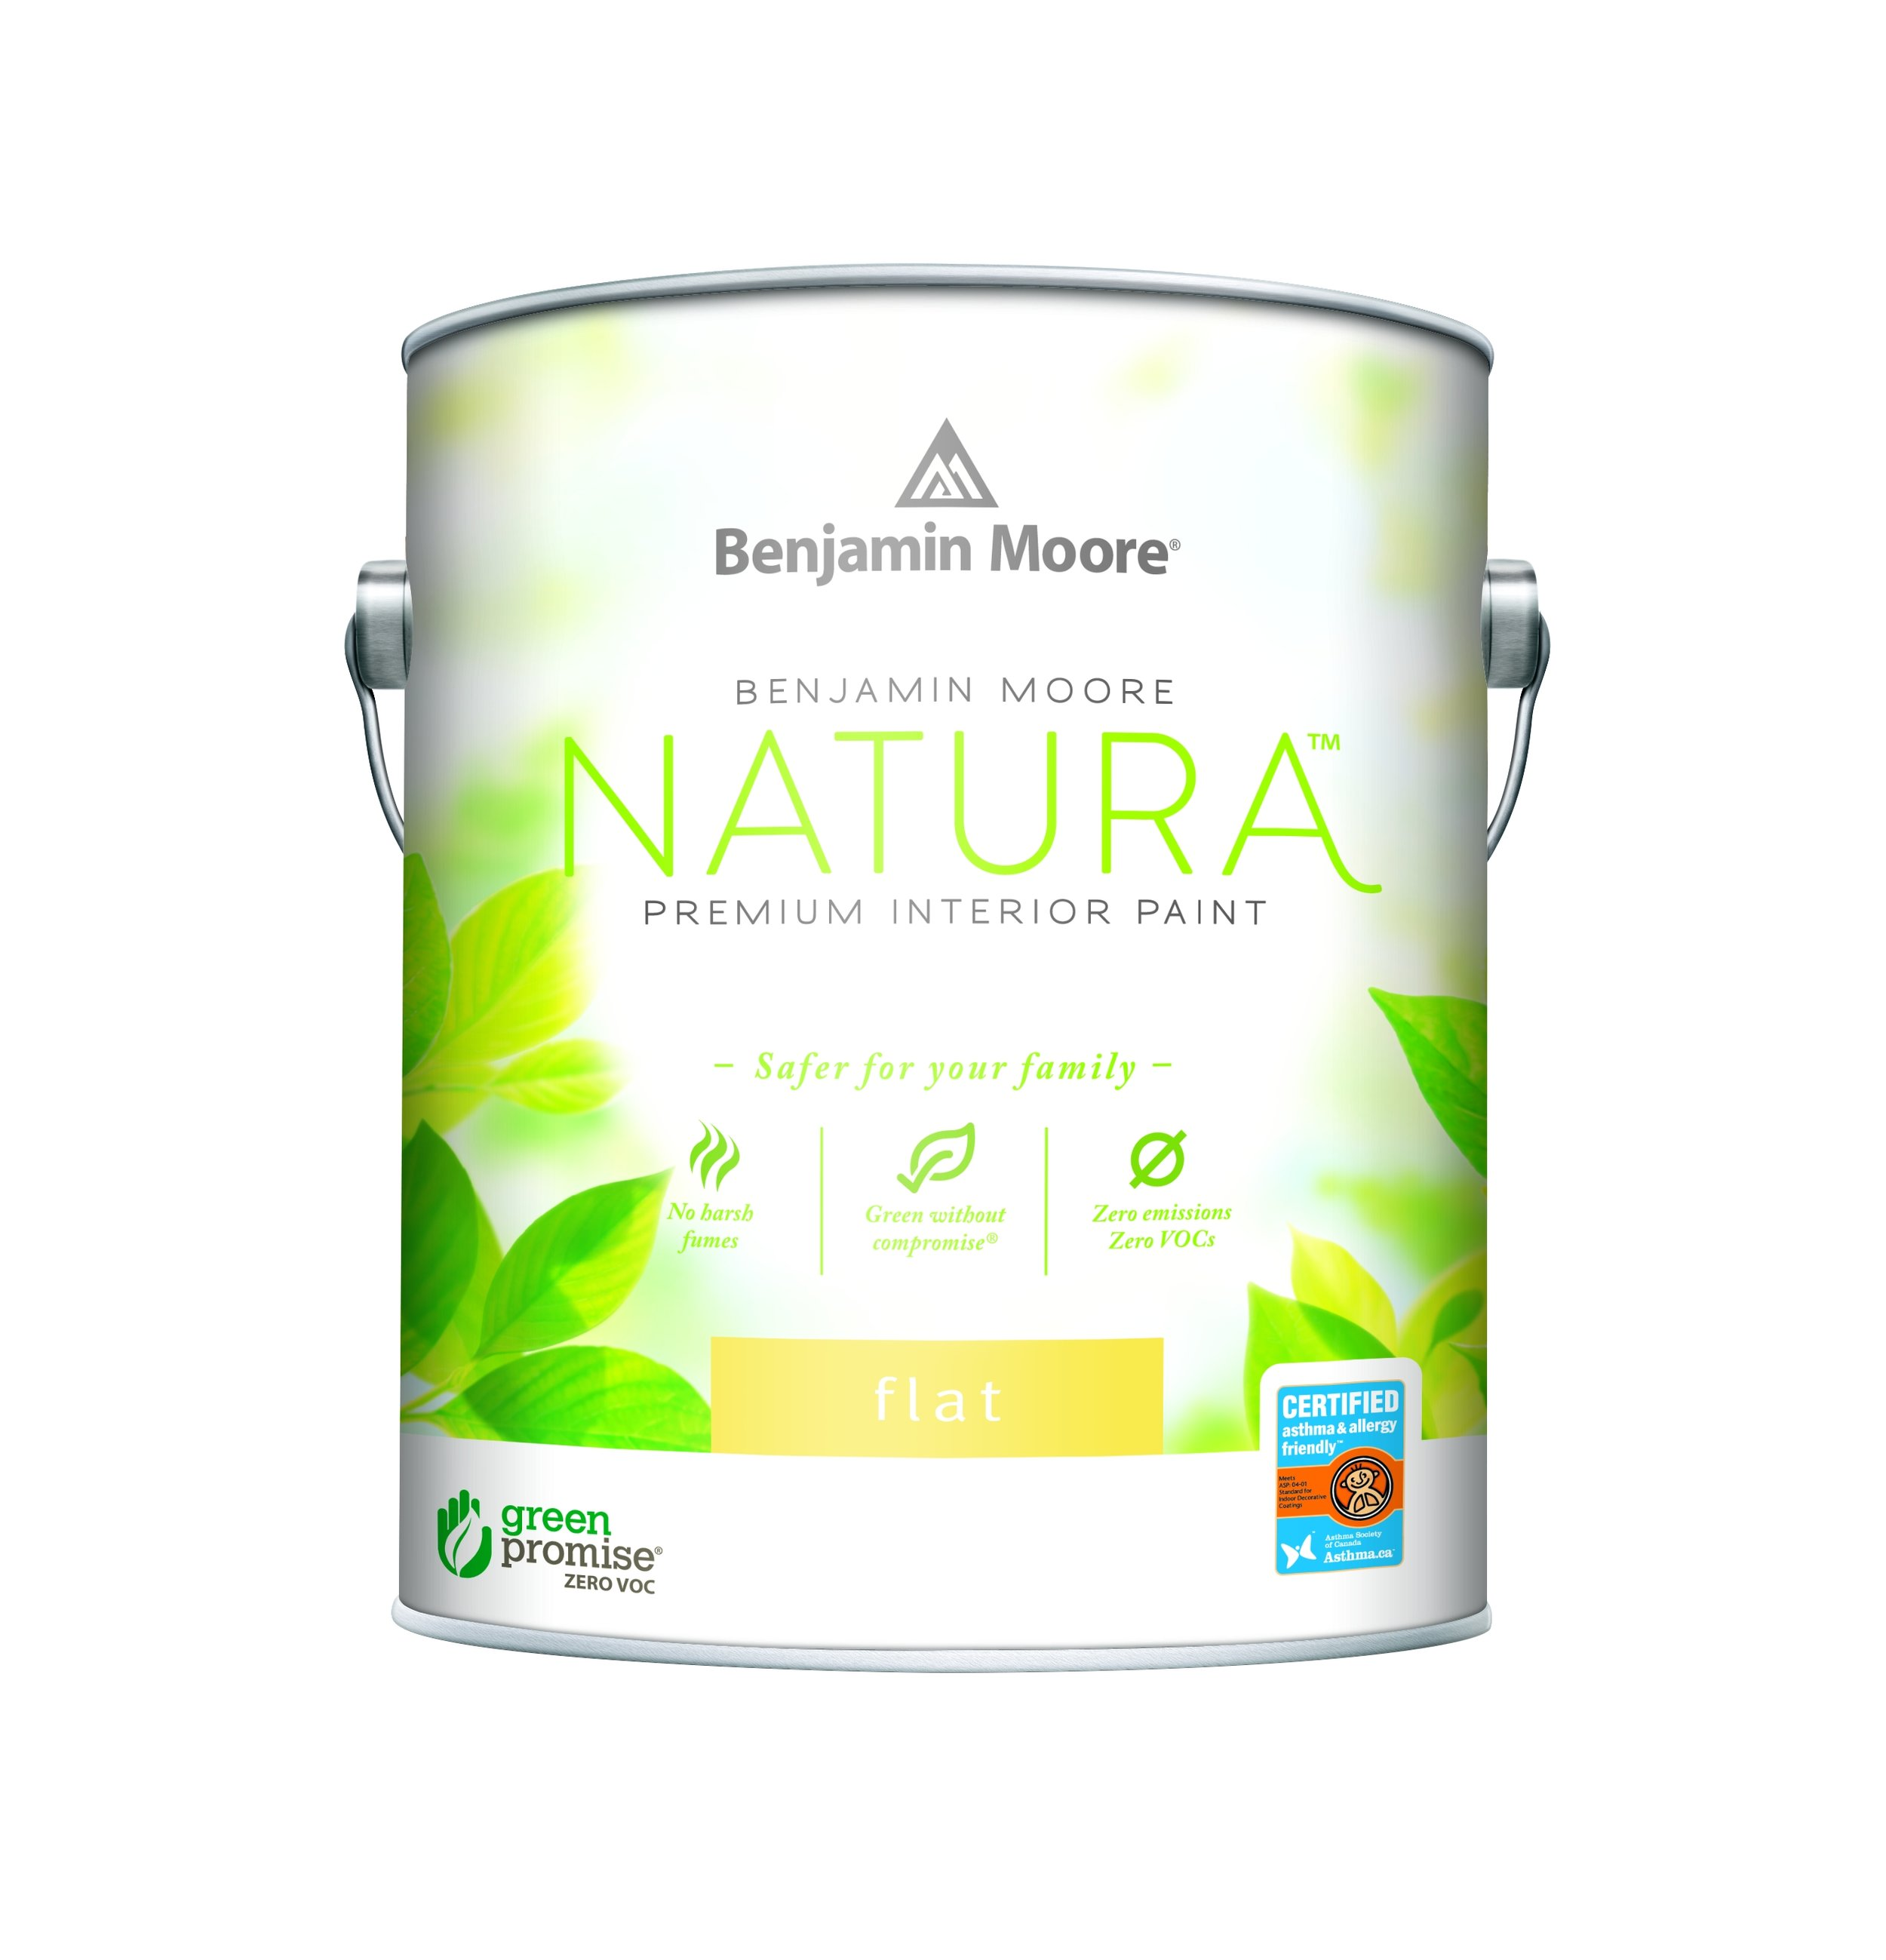 Benjamin Moore Natura™ Waterborne Interior Paint - Natura Waterborne Interior Paint continues Benjamin Moore's commitment to providing the most environmentally friendly paint. Natura Paint emits lower total VOCs than other national zero-VOC products on the market, all without compromise to performance or colour selection. Natura is truly